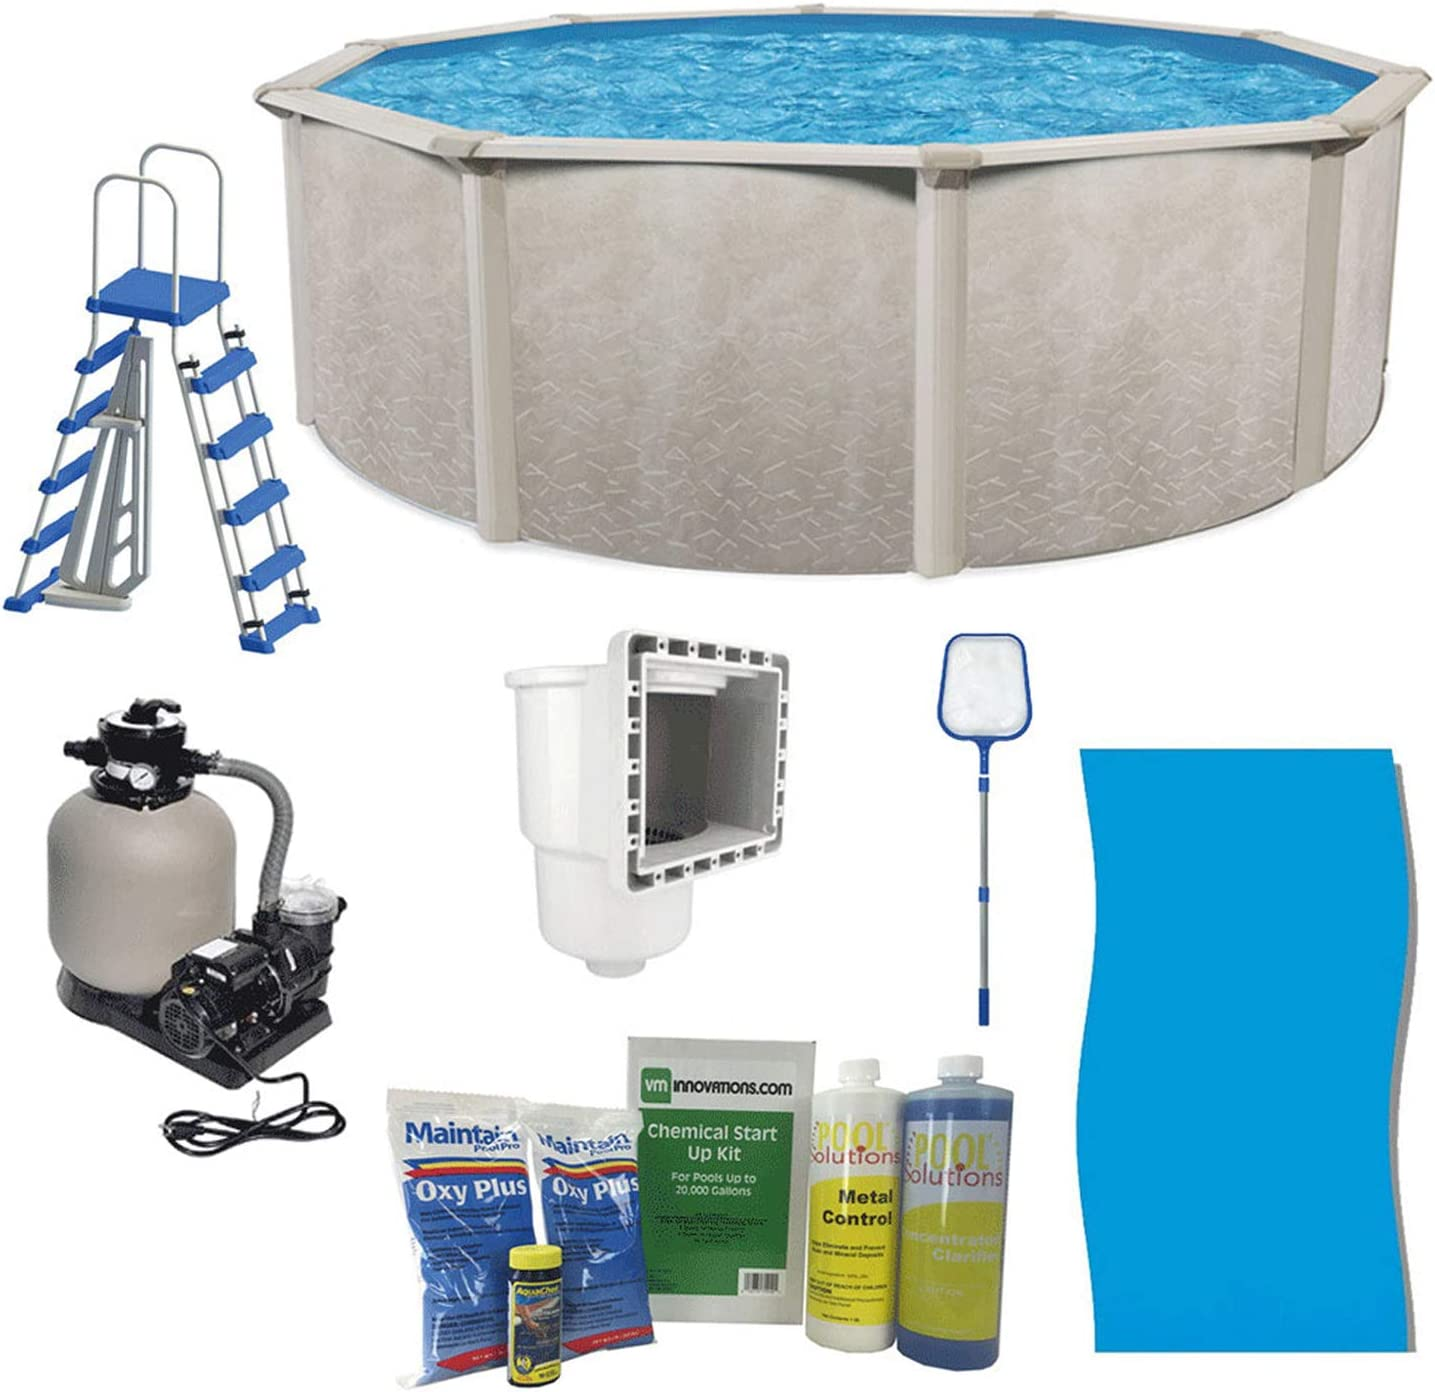 Aquarian Phoenix 21 X 52 Steel Frame Above Ground Swimming Pool Pump And Ladder Kit With Sand Filter Pool Liner Skimmer And Cleaning Accessories Garden Outdoor